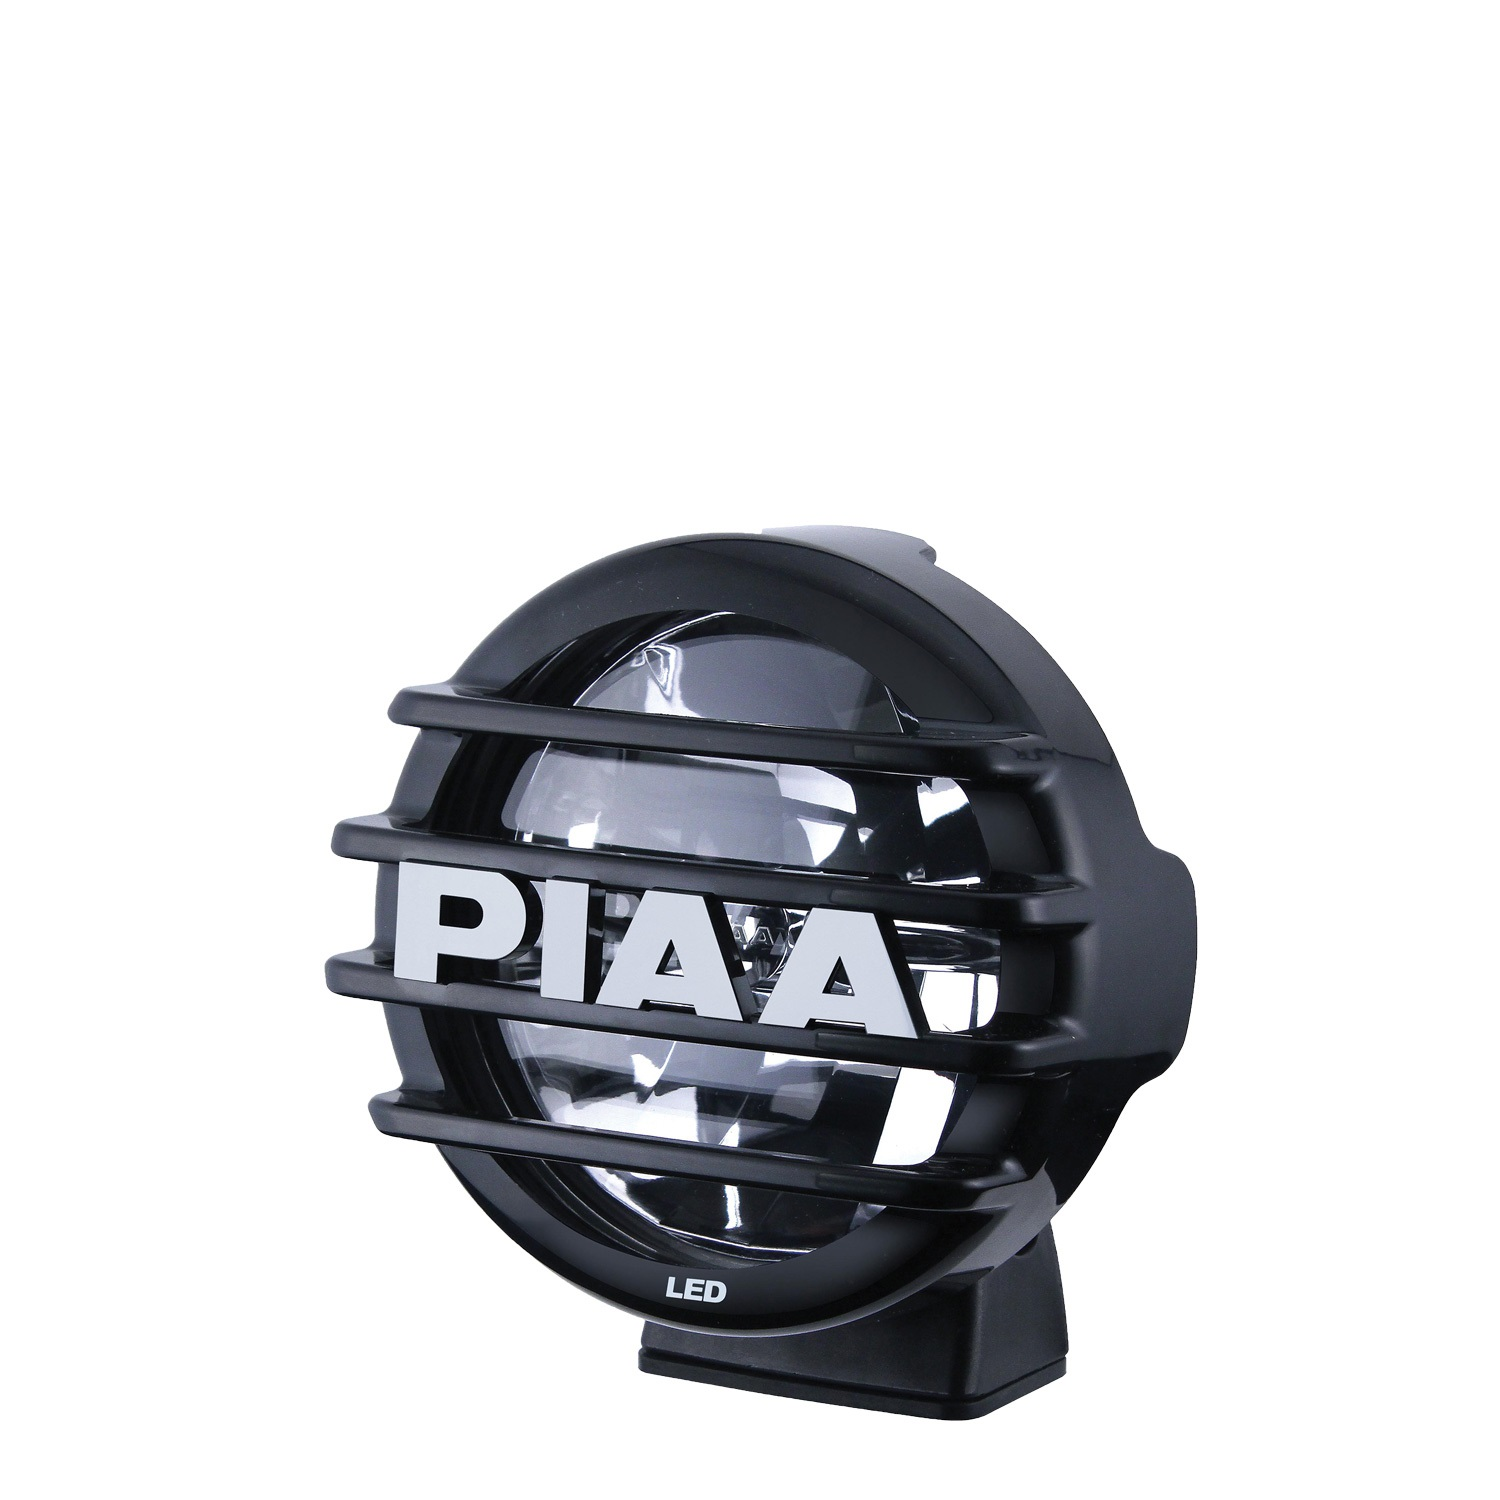 PIAA Lp550 LED Driving Light Kit